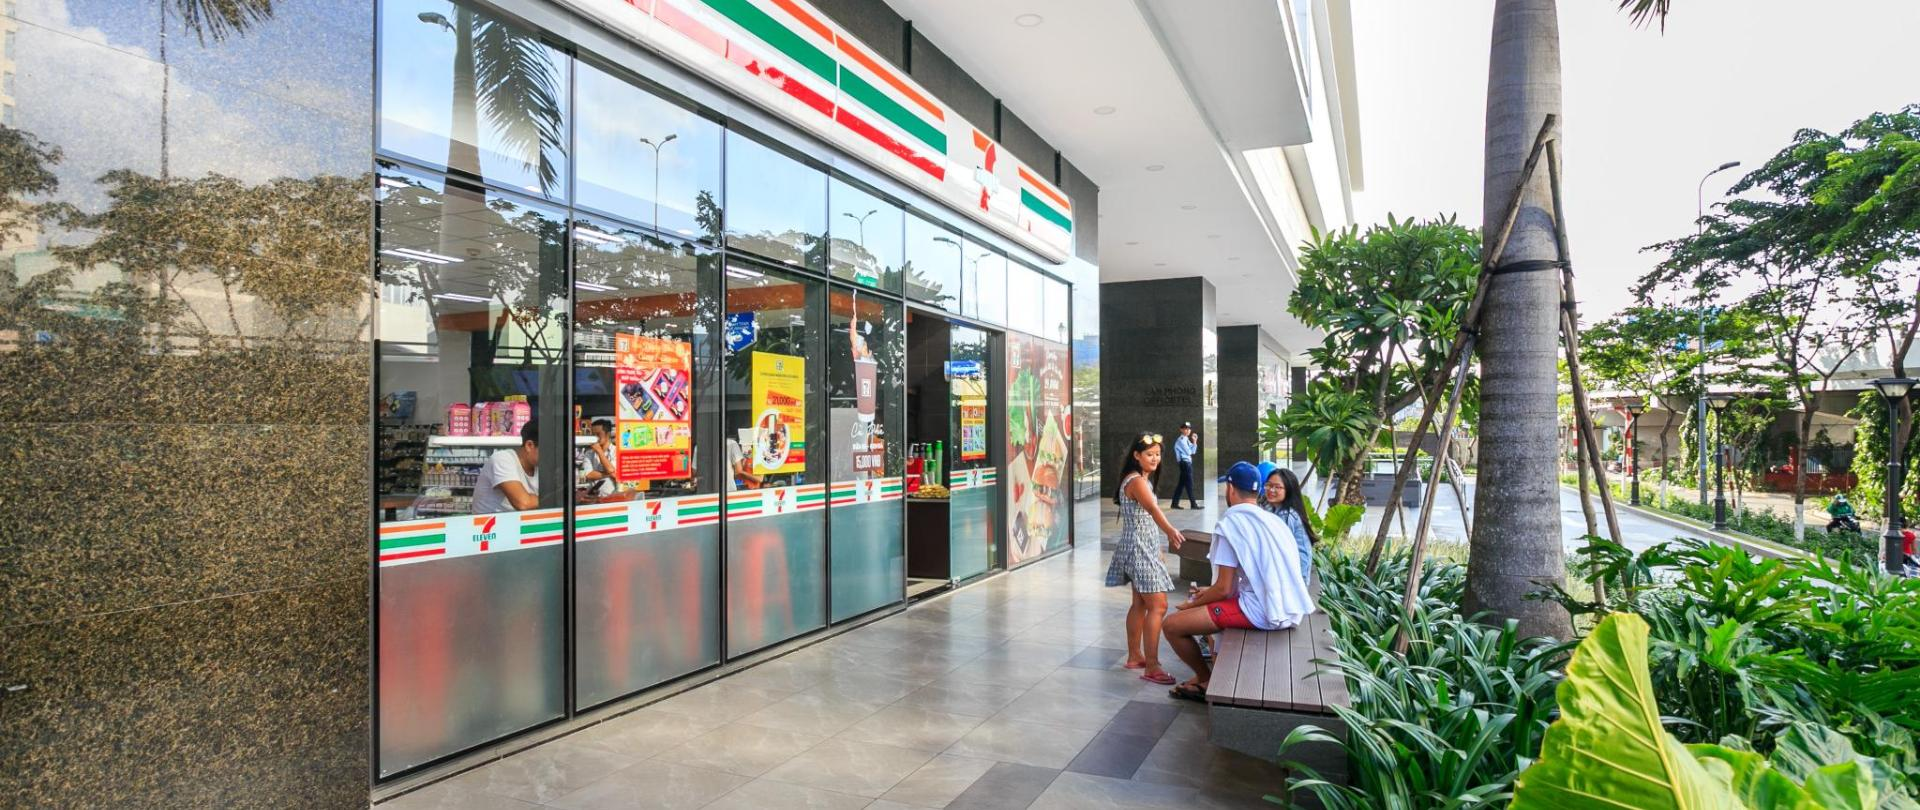 trip-apartment-saigon-7eleven.jpg